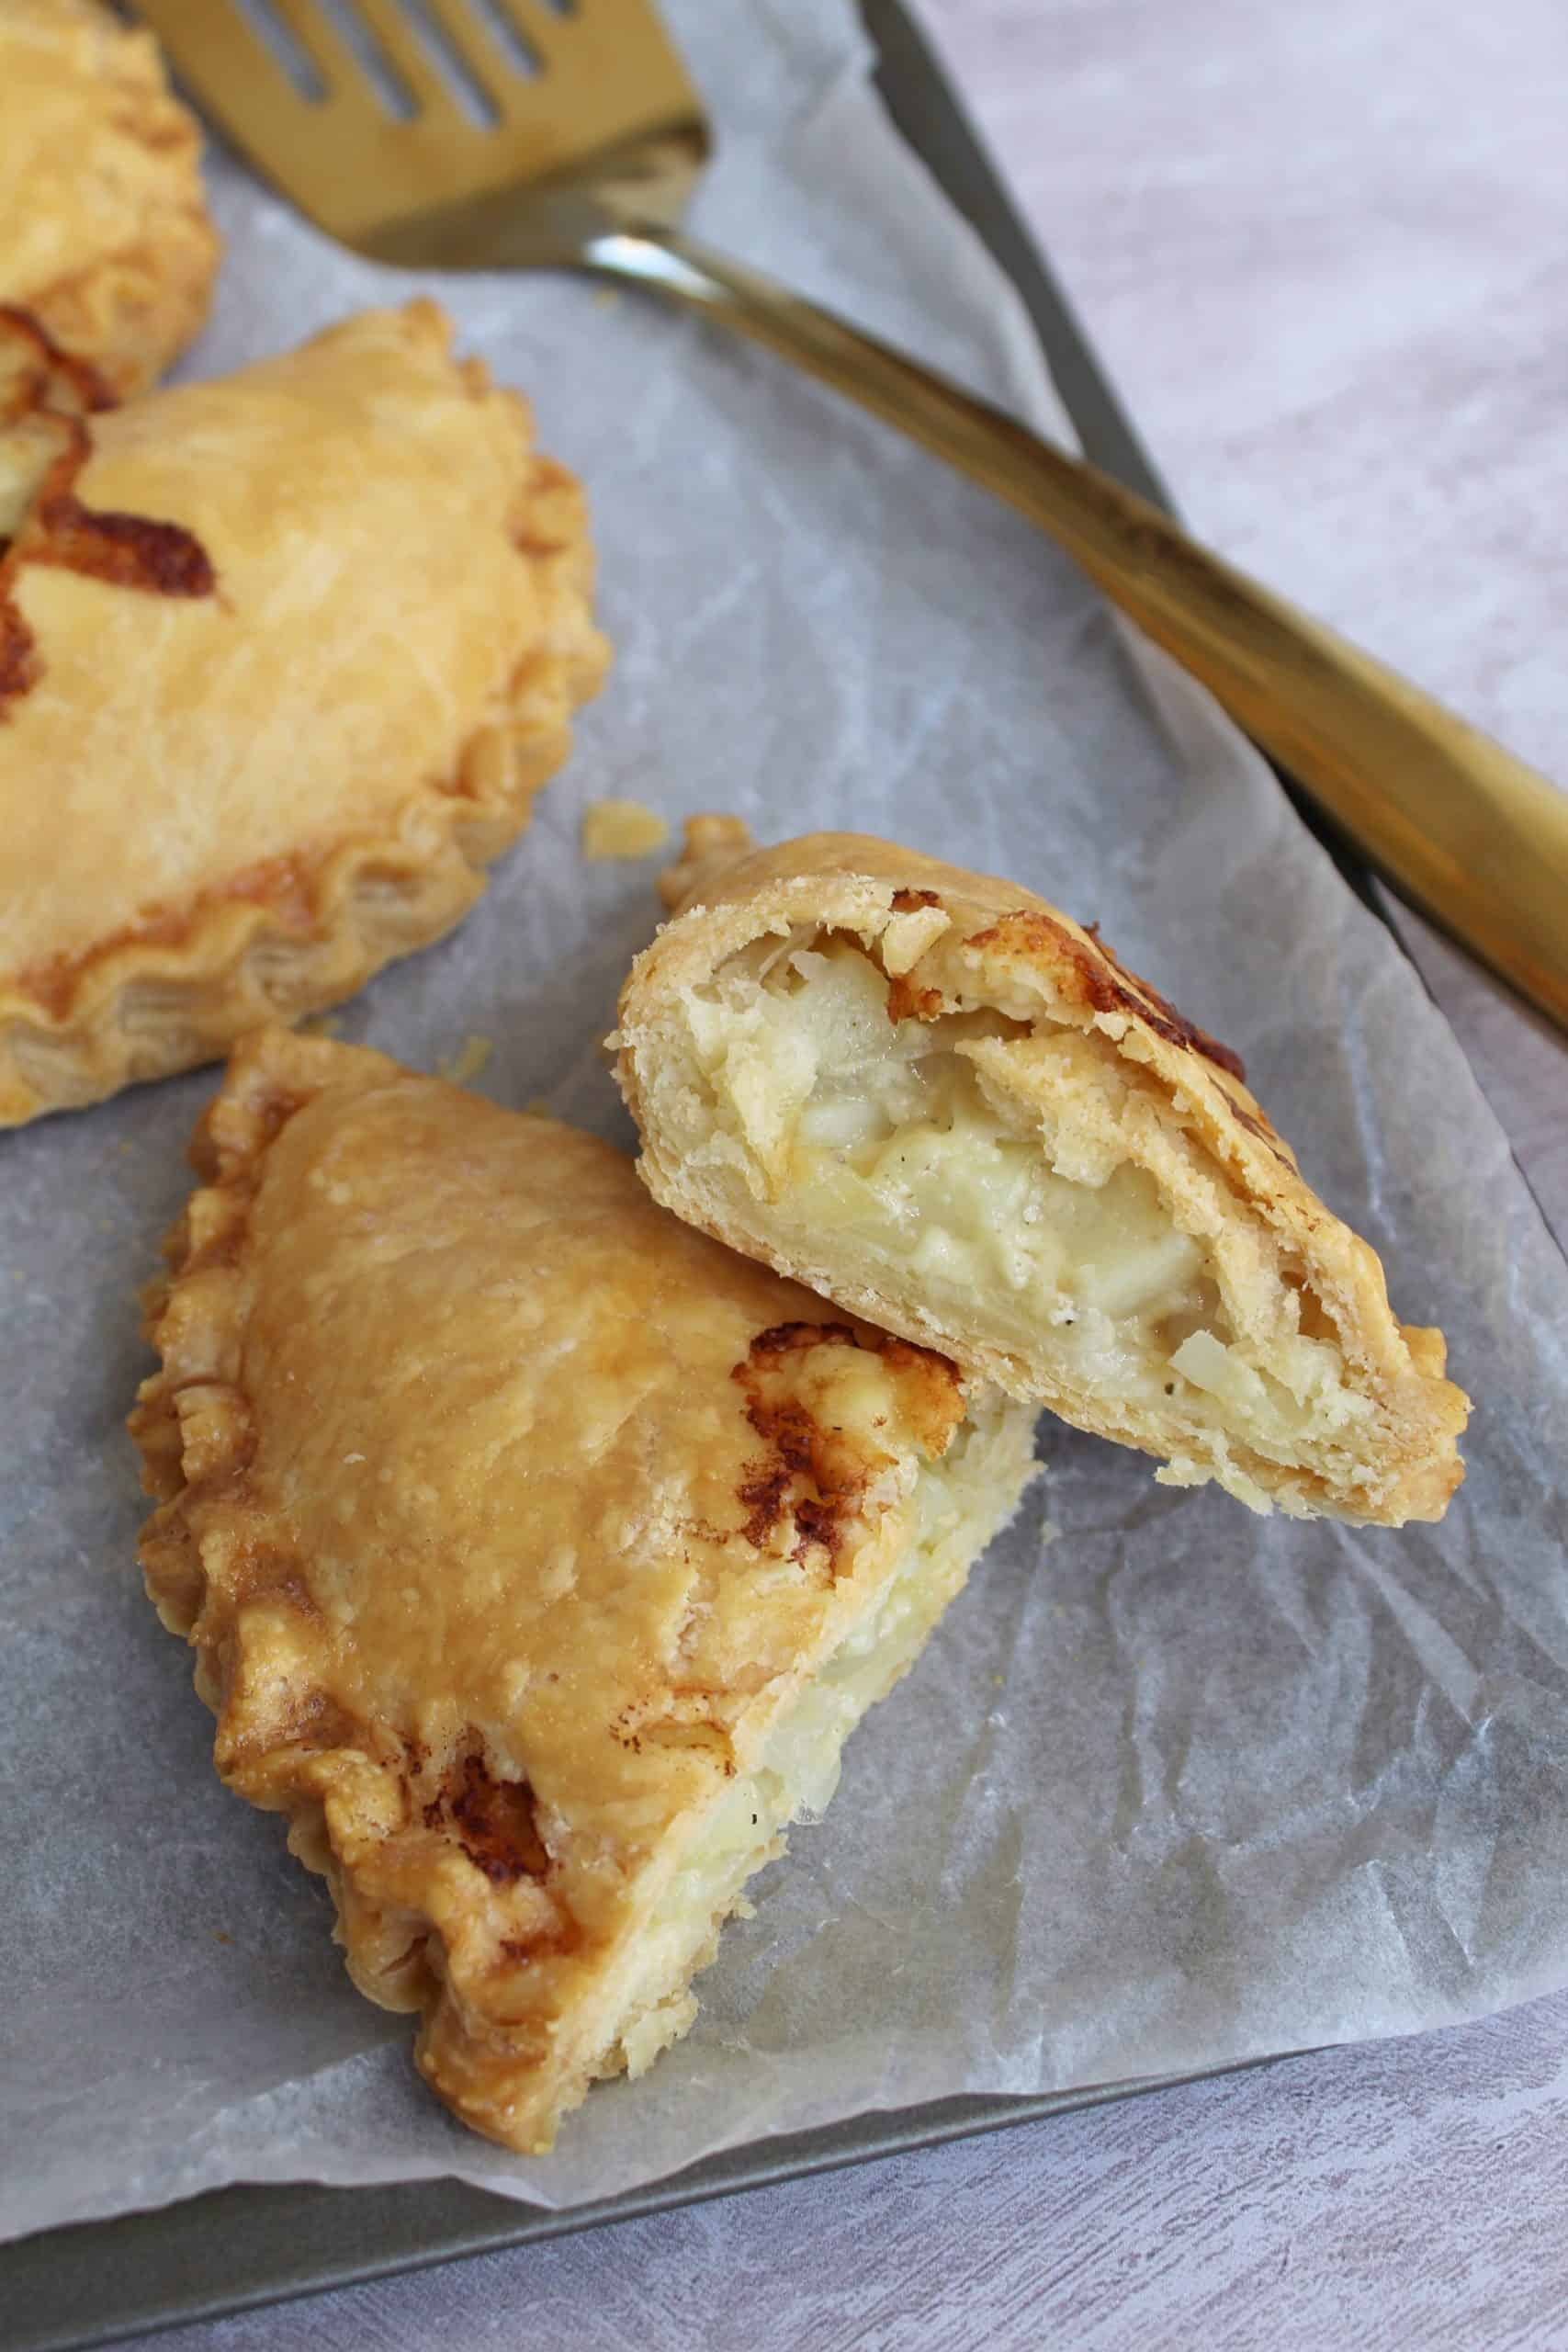 GLUTEN FREE CHEESE AND ONION PASTY RECIPE